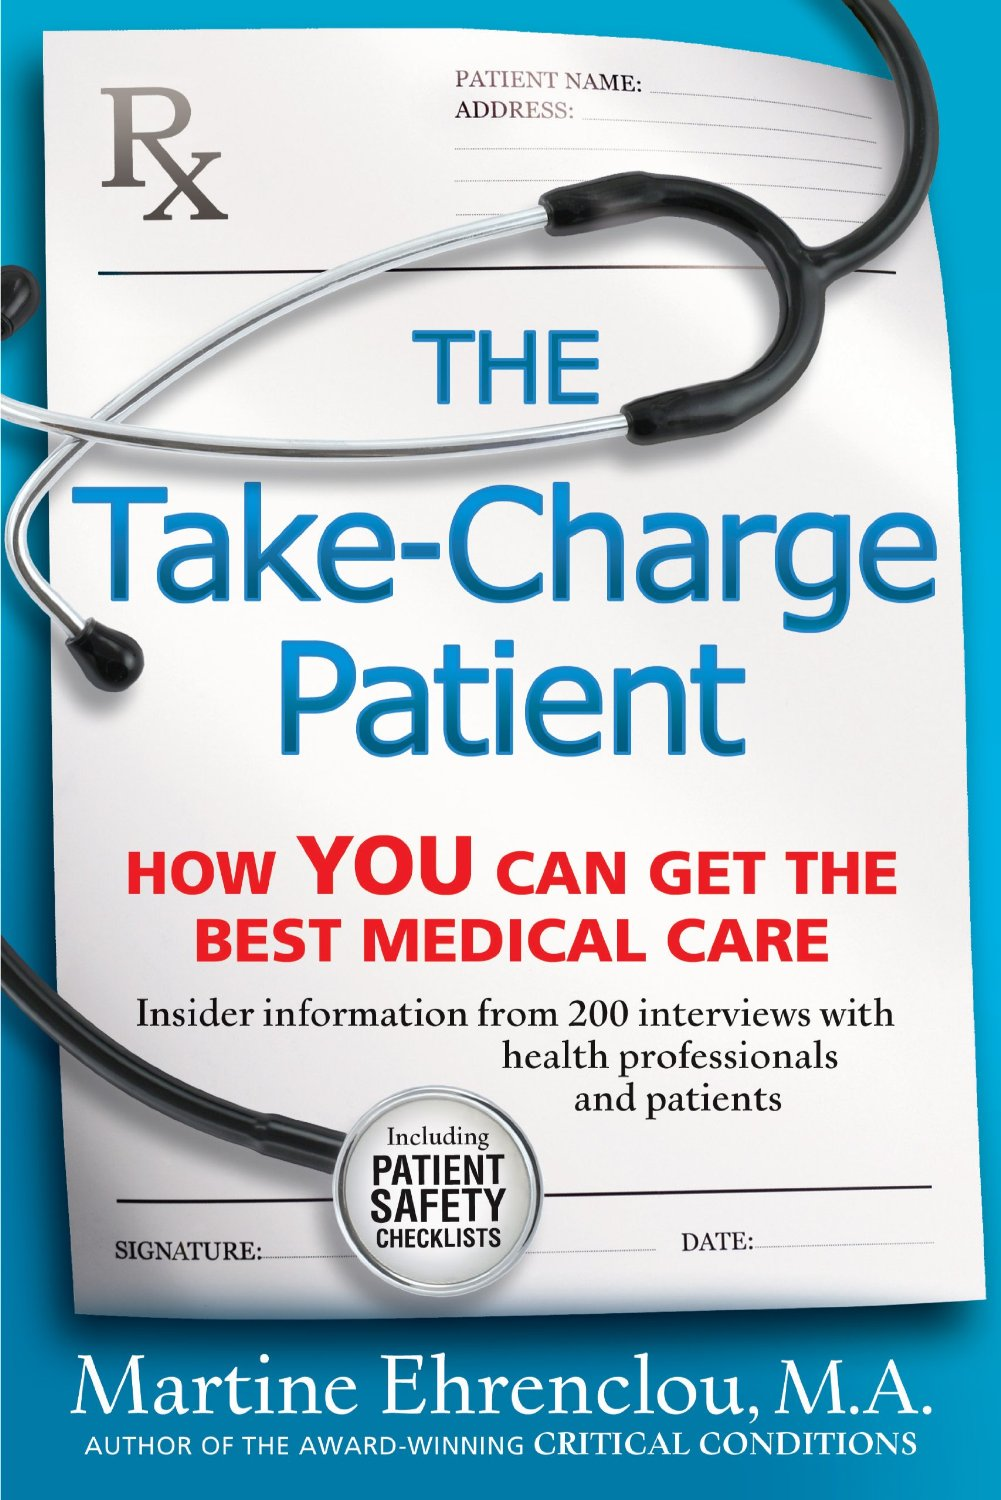 The Take Charge Patient.jpg